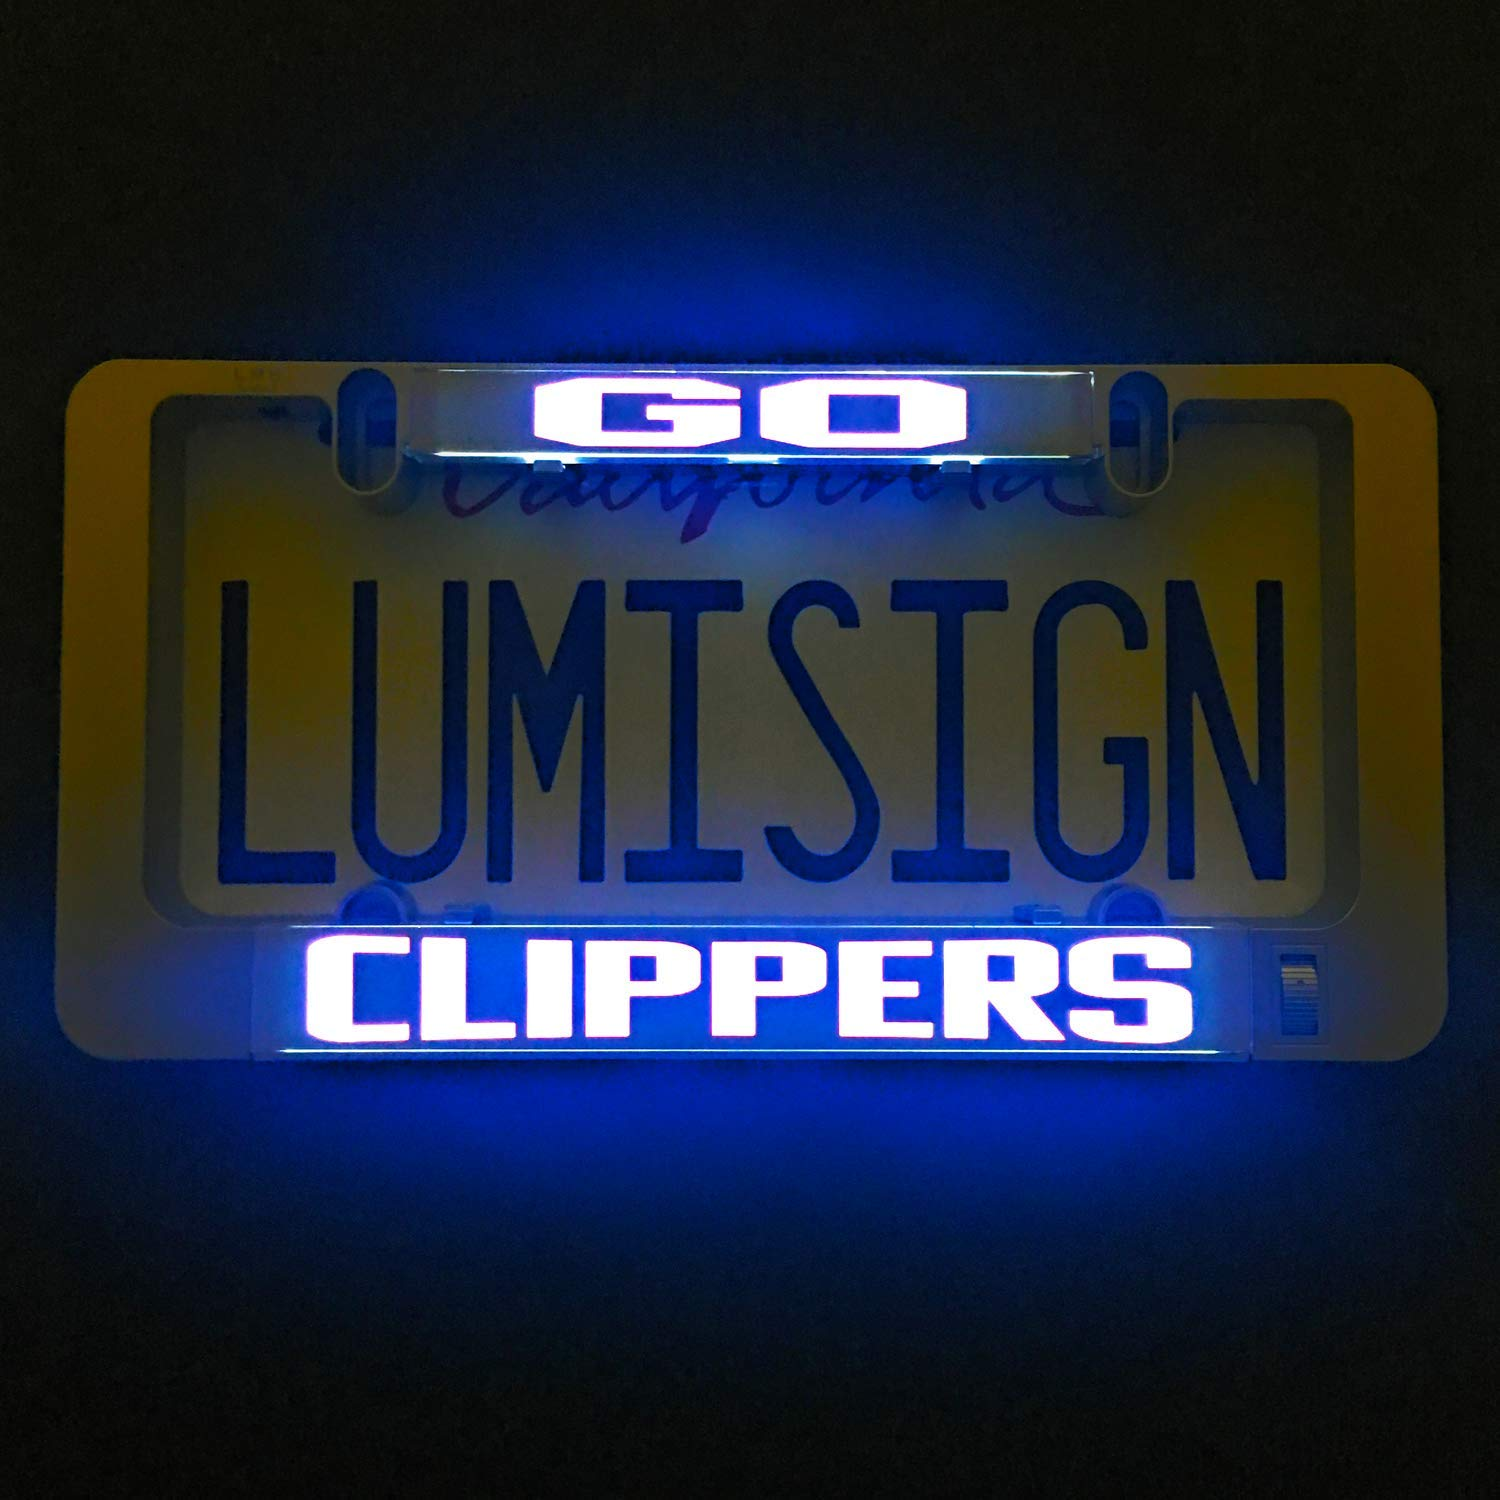 LumiSign - The Auto Illuminated License Plate Frame | Lights While Braking | Installs in Seconds | No Wires, Battery Operated | Switchable Inserts (Go Lakers) Olens Technology